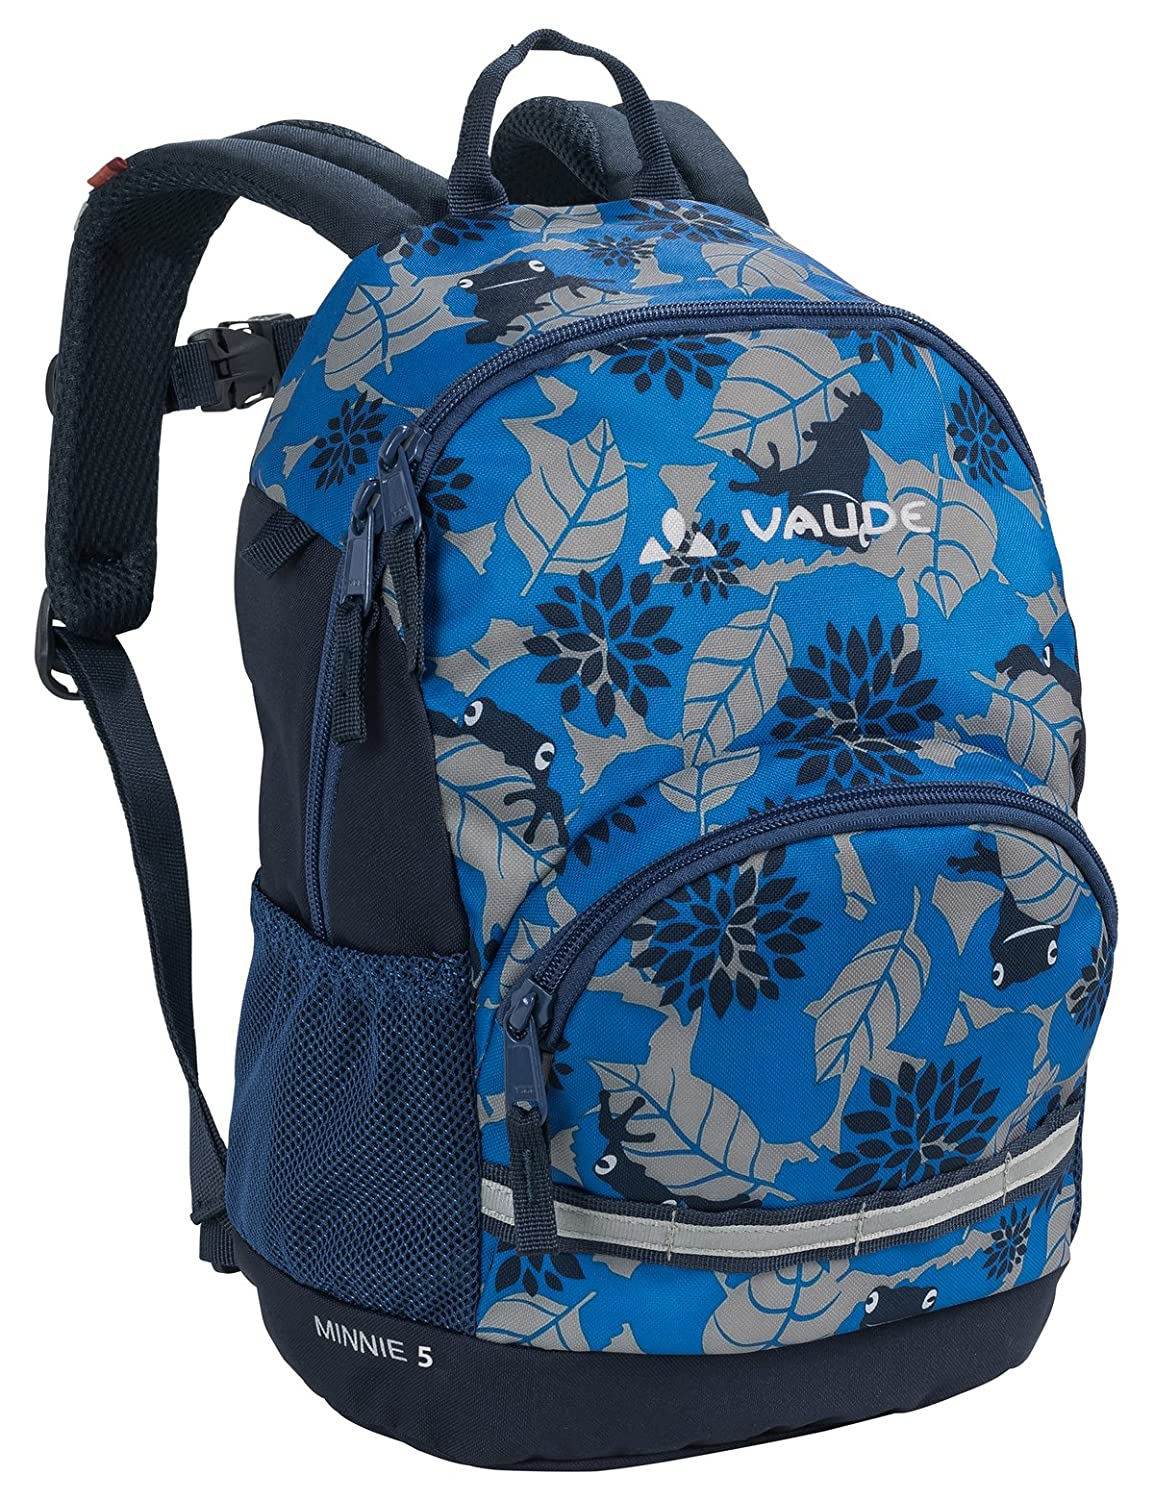 Vaude Minnie 10 radiate blue 10 Liter